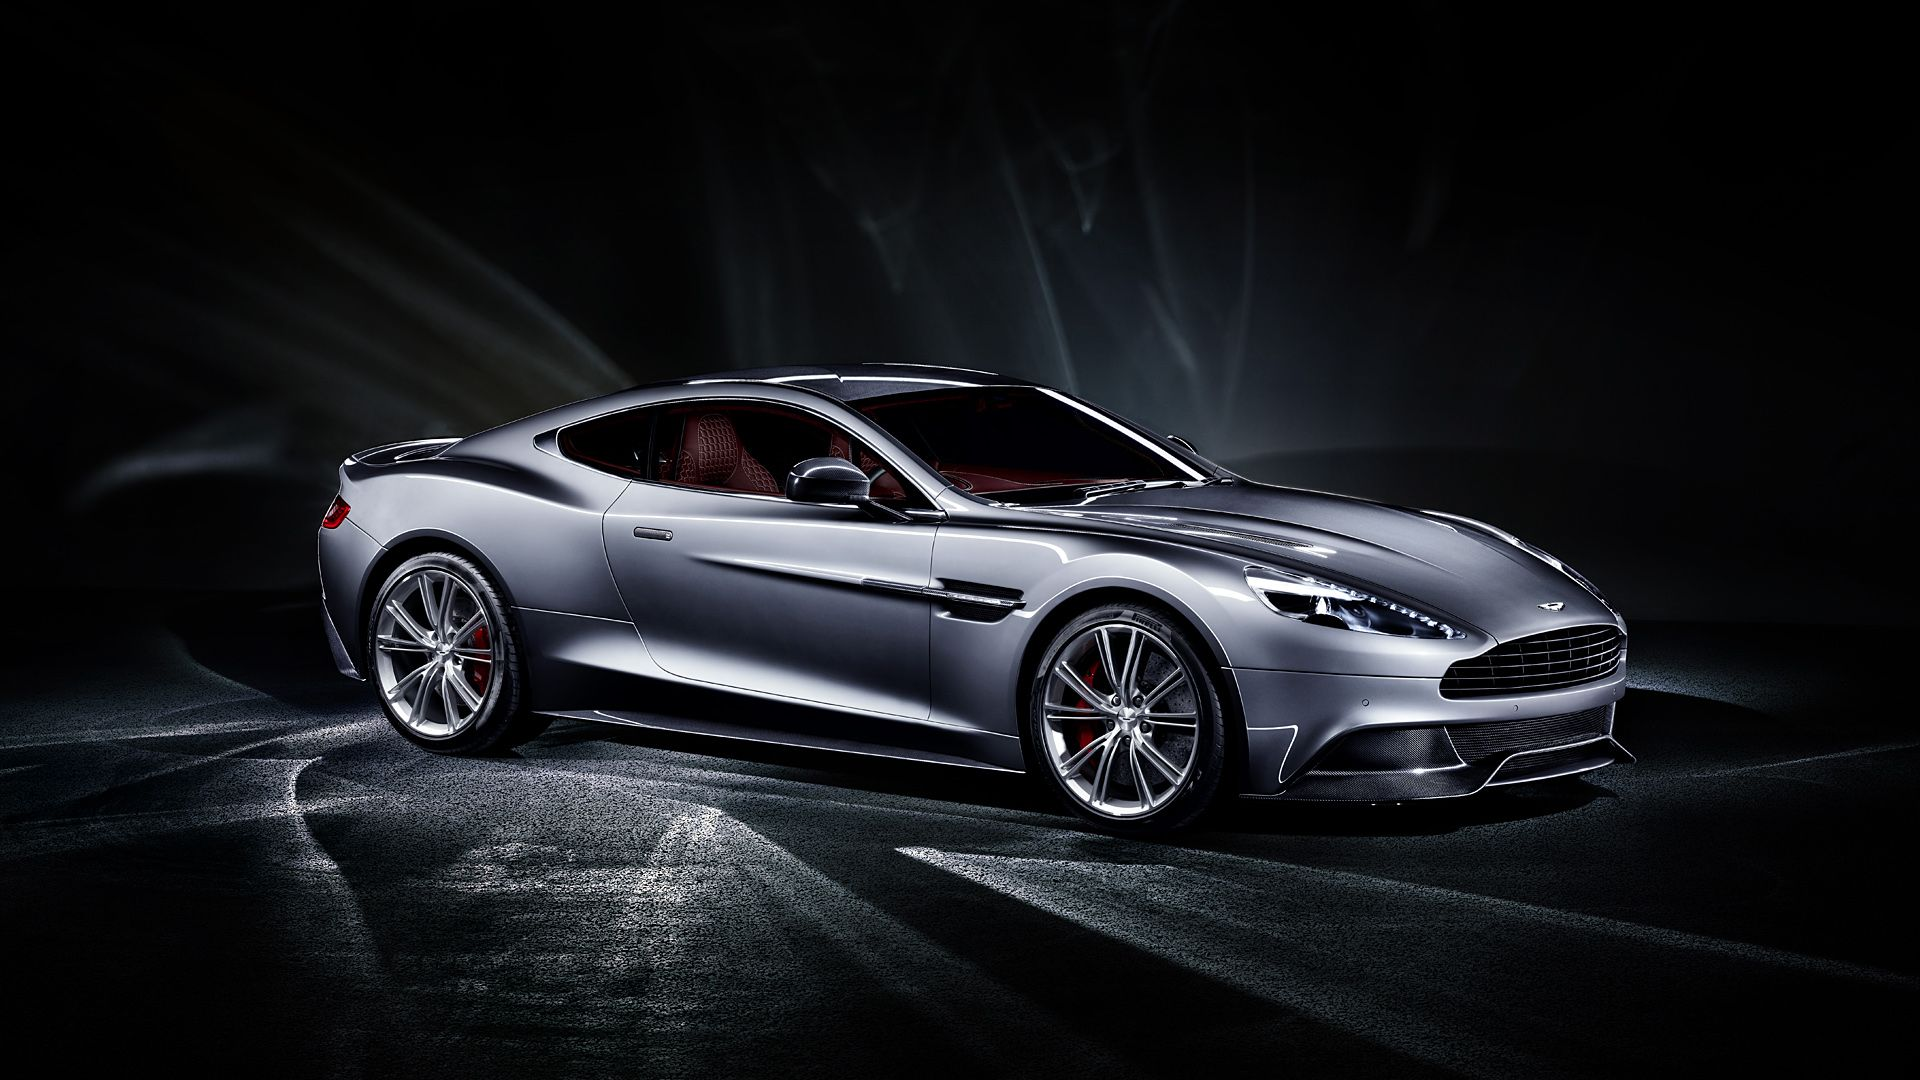 Aston Martin Vanquish HD wallpapers